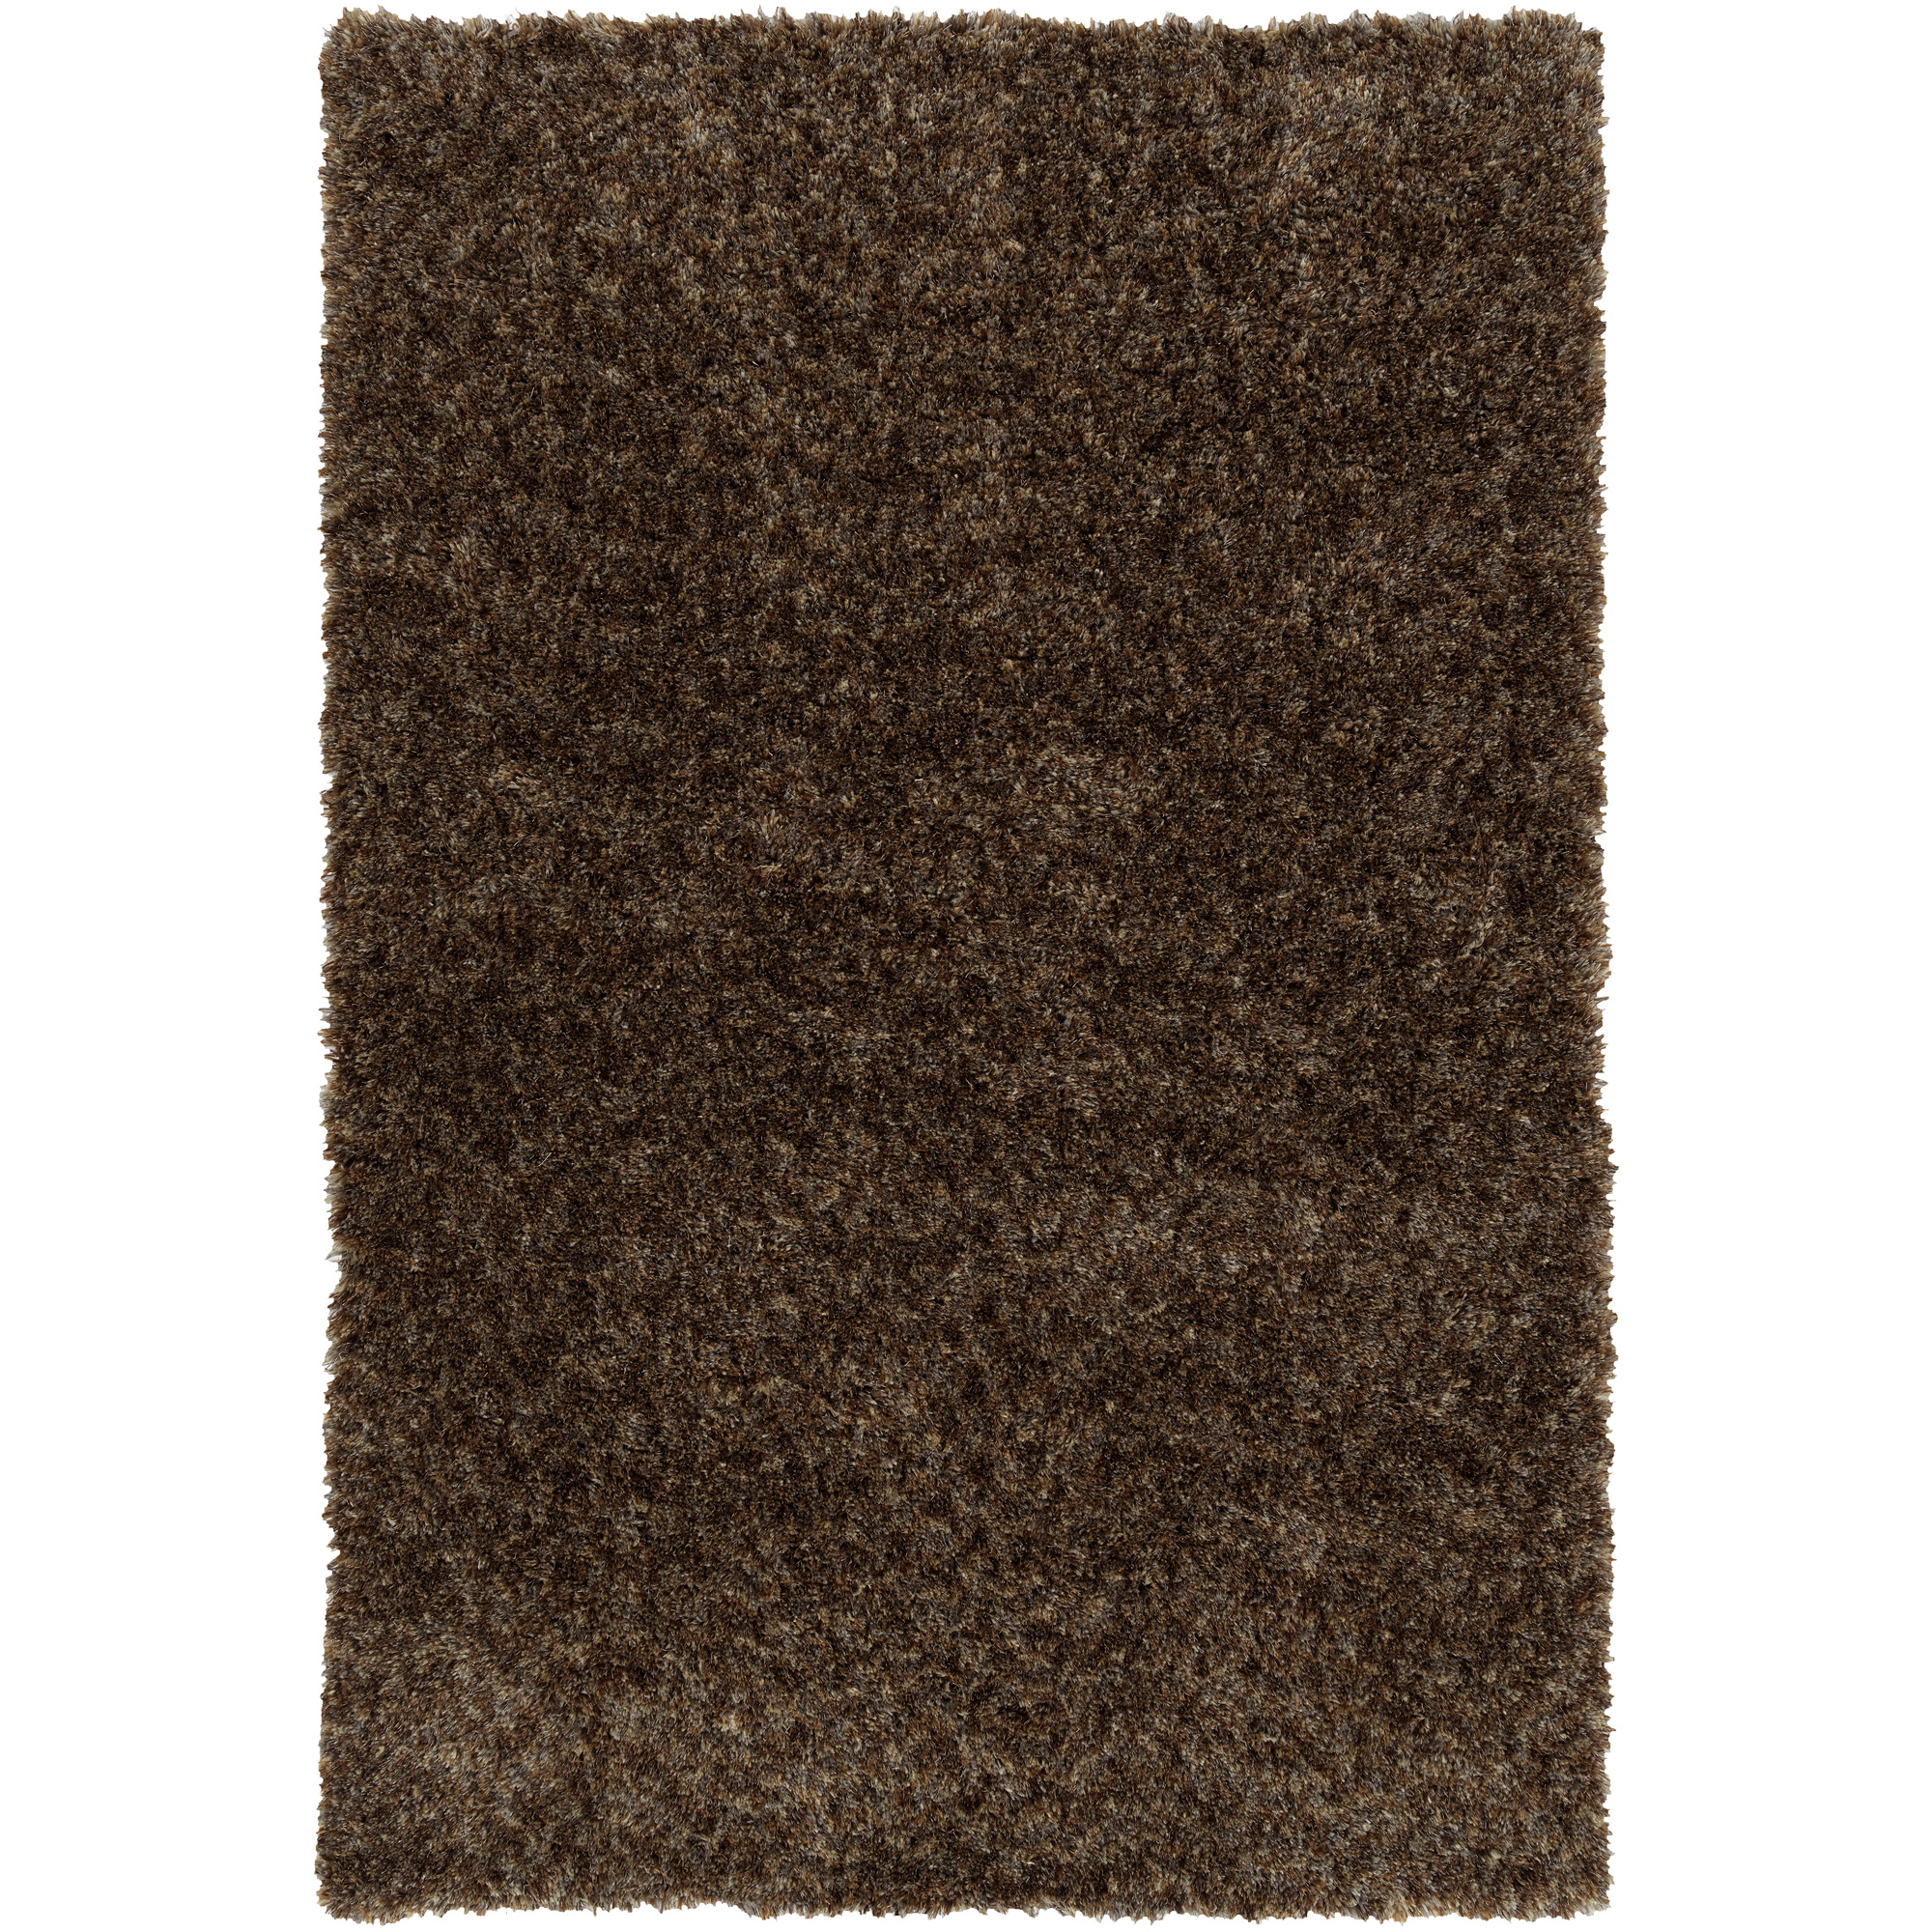 Dalyn Rug | Cabot Chocolate 5x8 Area Rug